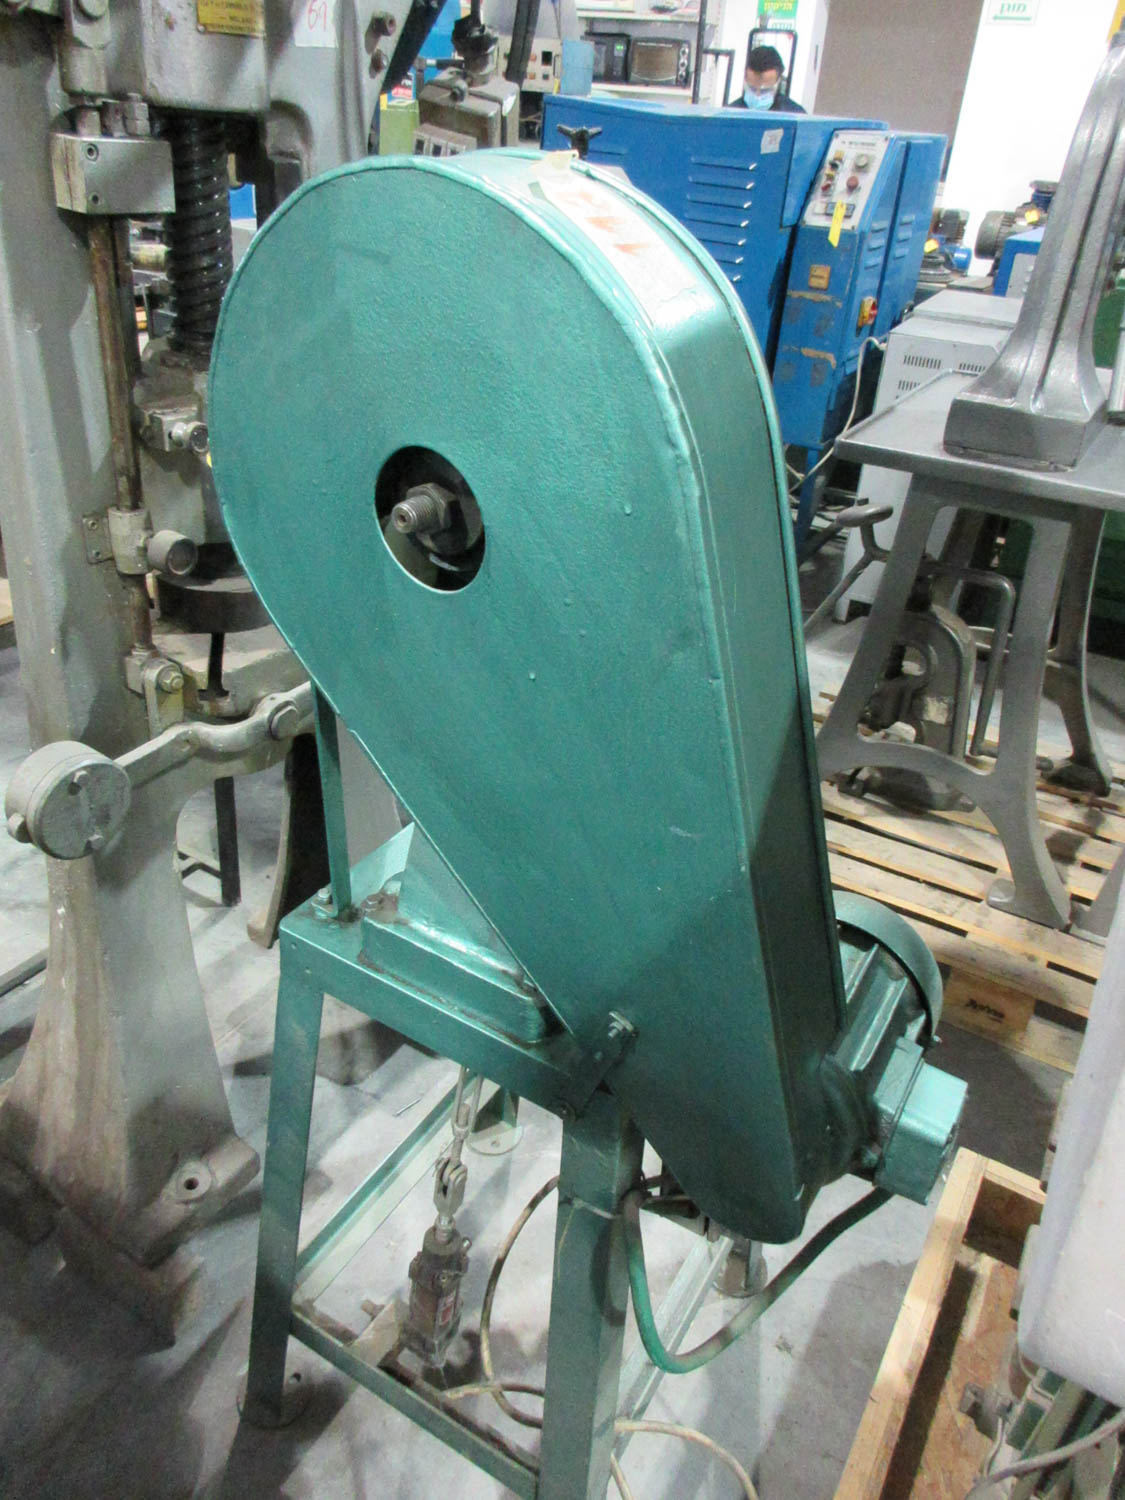 Lot 40 - C-FRAME PUNCH PRESS, 25X18 T-SLOT TABLE, 10 CM THROAT, 13 CM OPEN HEIGHT; 5 TONS [A#112][LOCATED